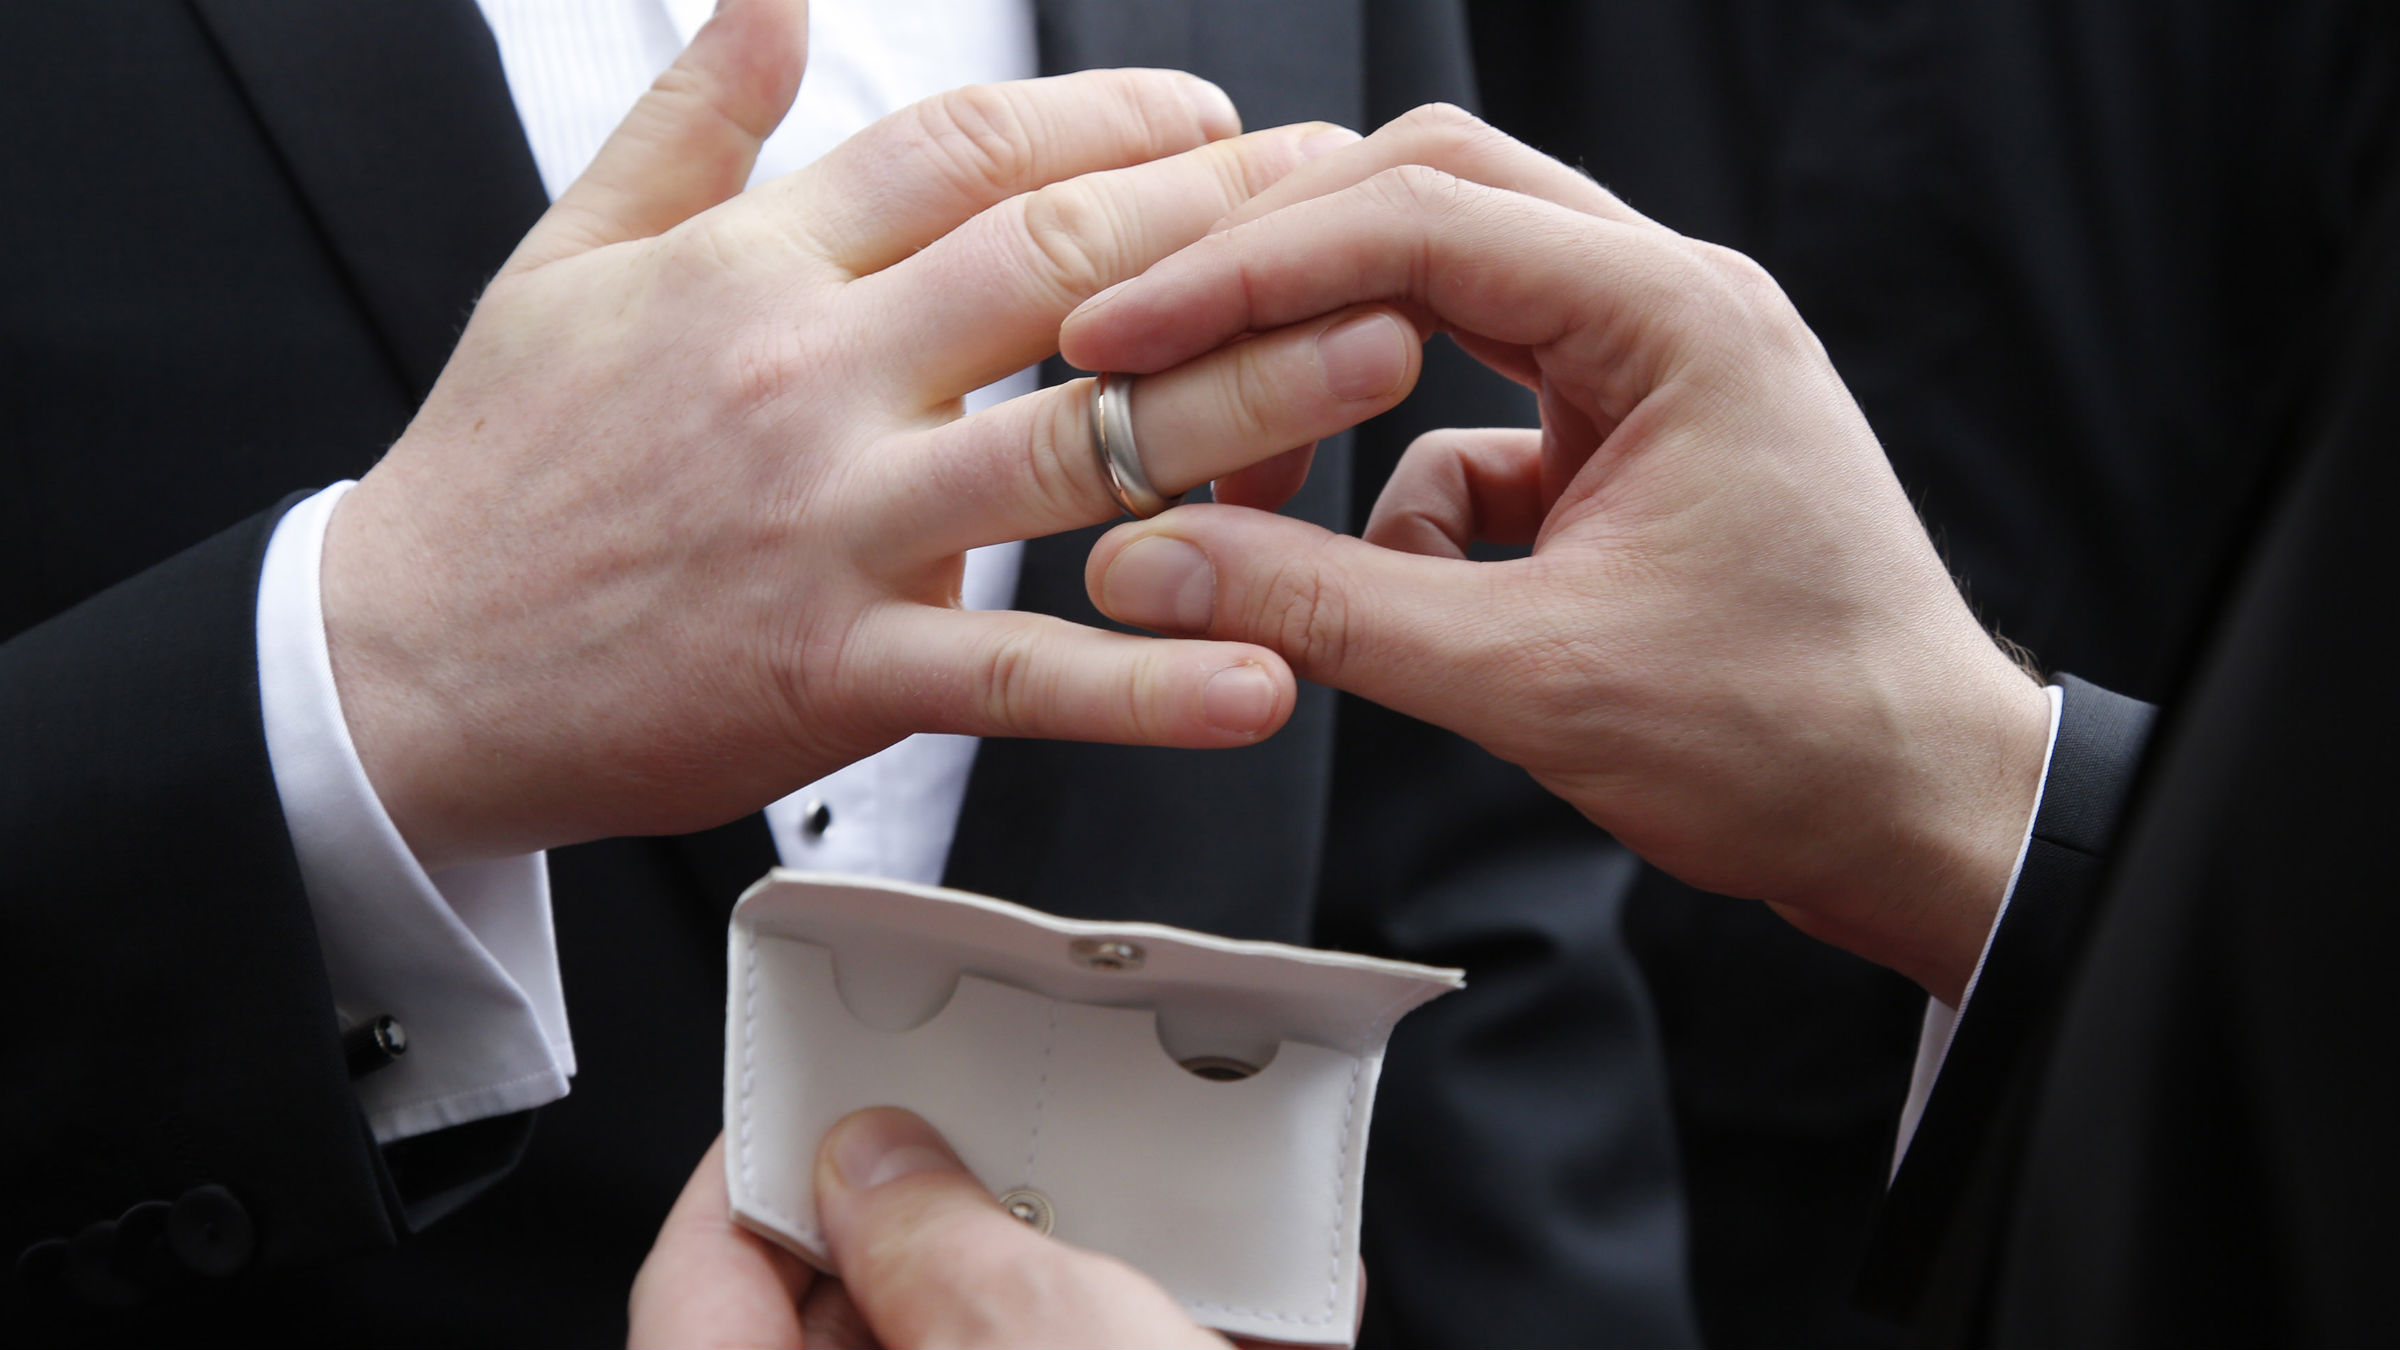 Gay couple Holger Schmitt (C) and his husband Alexander Nicolai exchange rings after being married by Copenhagen's Mayor Frank Jensen, in Copenhagen May 9, 2014. Several gay couples were married by the Copenhagen mayor on Friday prior to the grand final of the 59th annual Eurovision Song Contest on May 10.